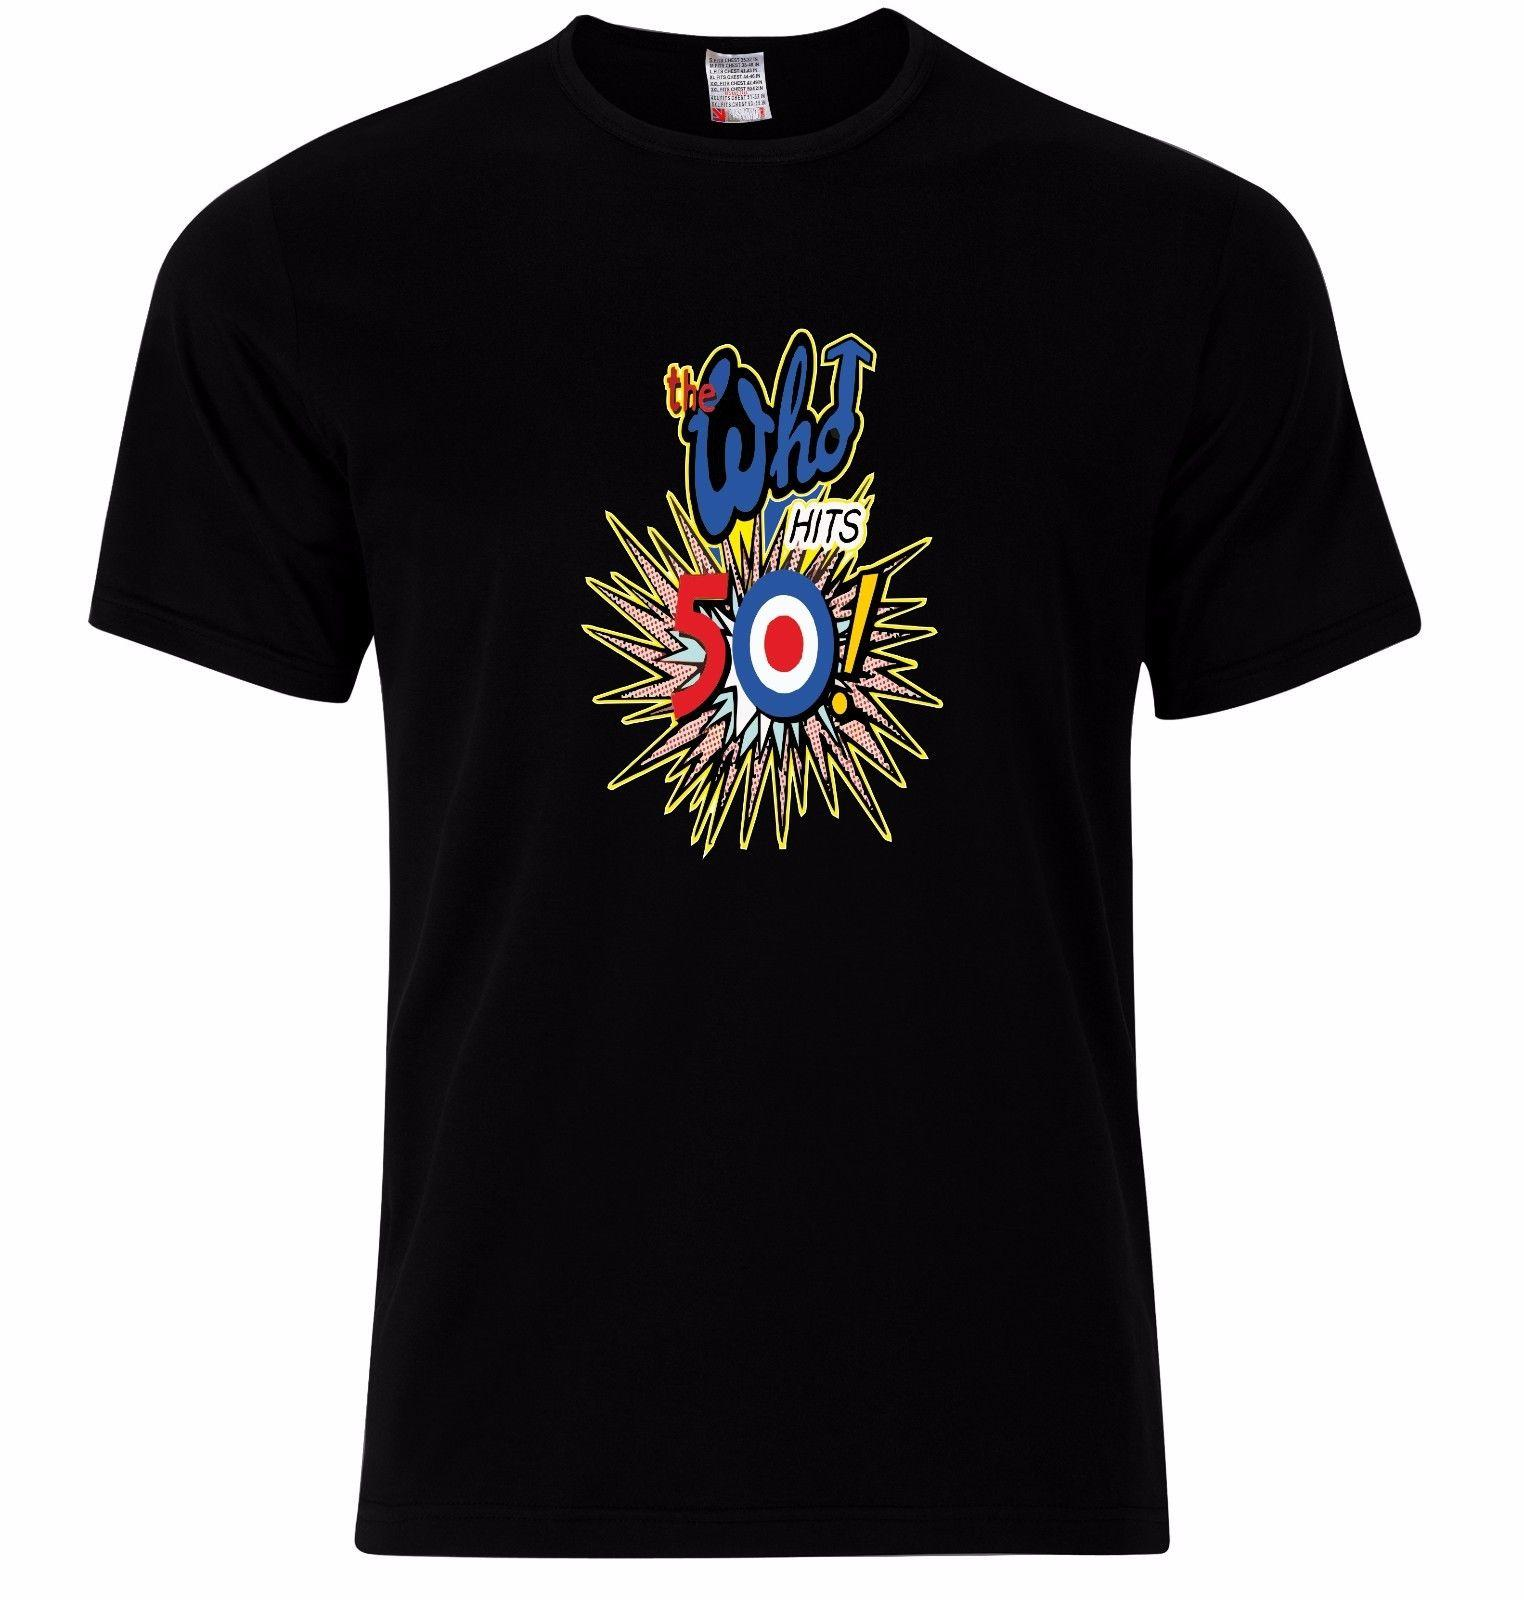 a44ca70d6b The Who Hits 50 Years Townshend Entwistle Mod Target T Shirts Tops Rock  Music Cool Casual Pride T Shirt Men Unisex New Retro Tee Shirts T Sirts  From Basgirl ...